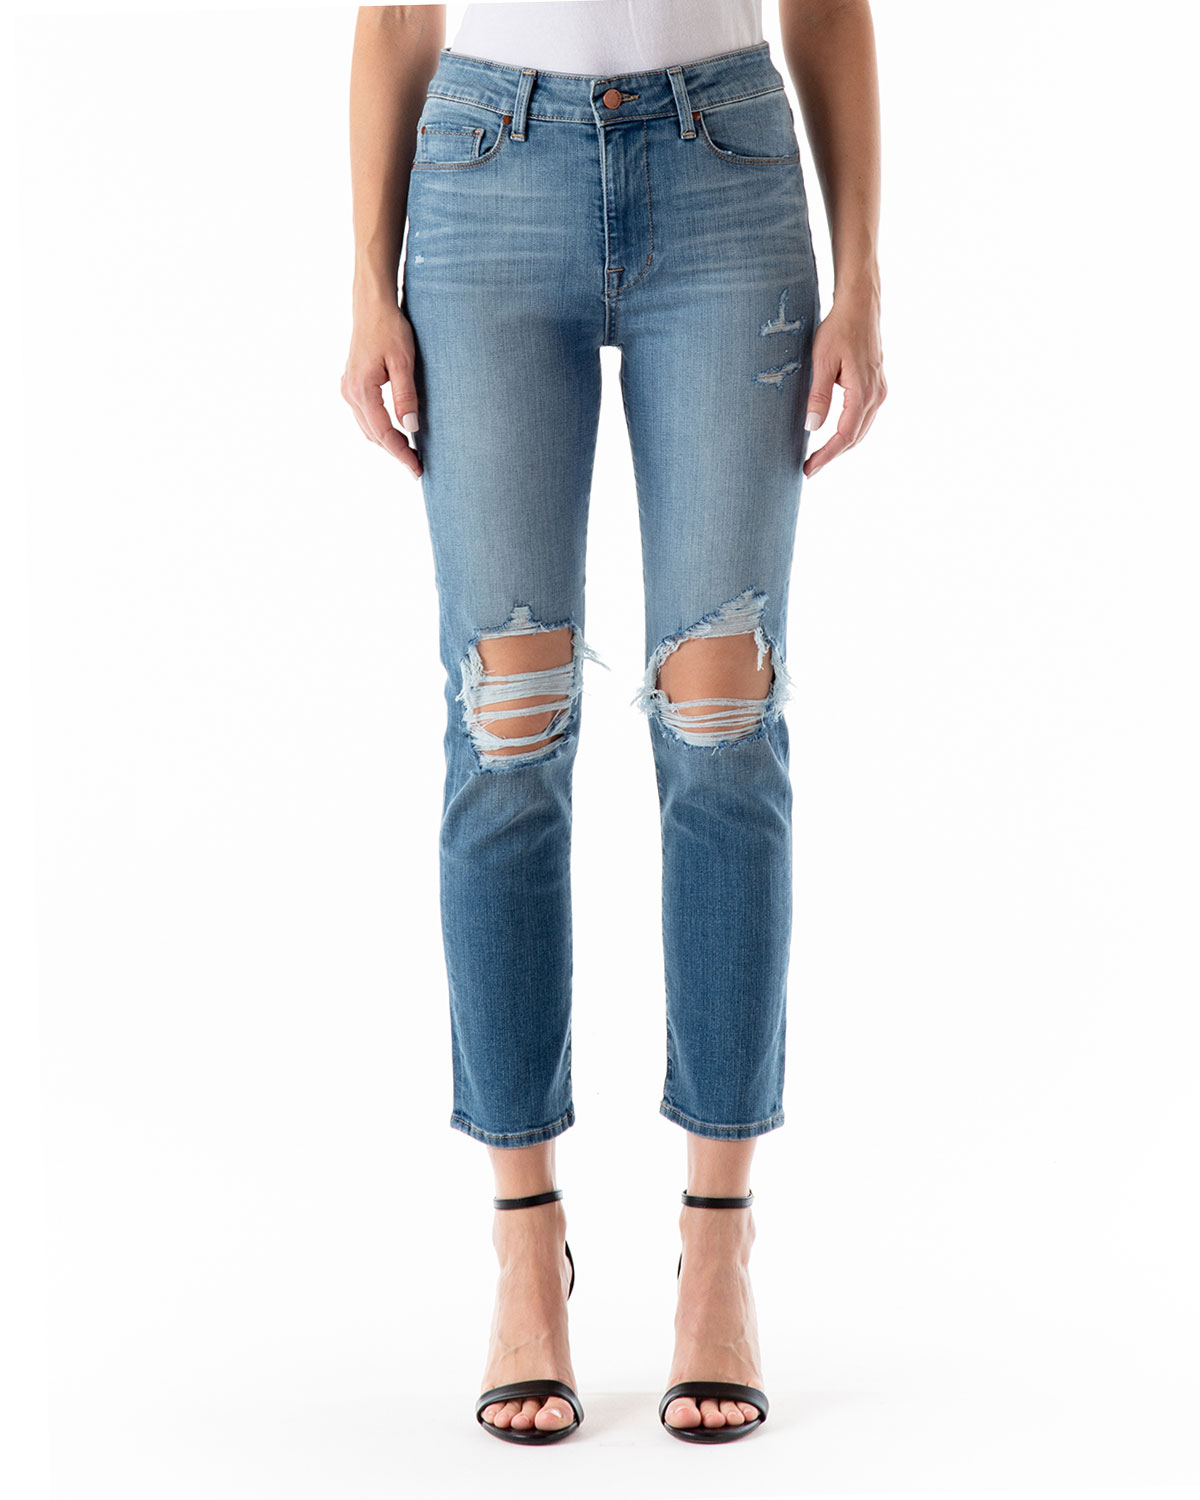 Cher High-Rise Distressed Jeans